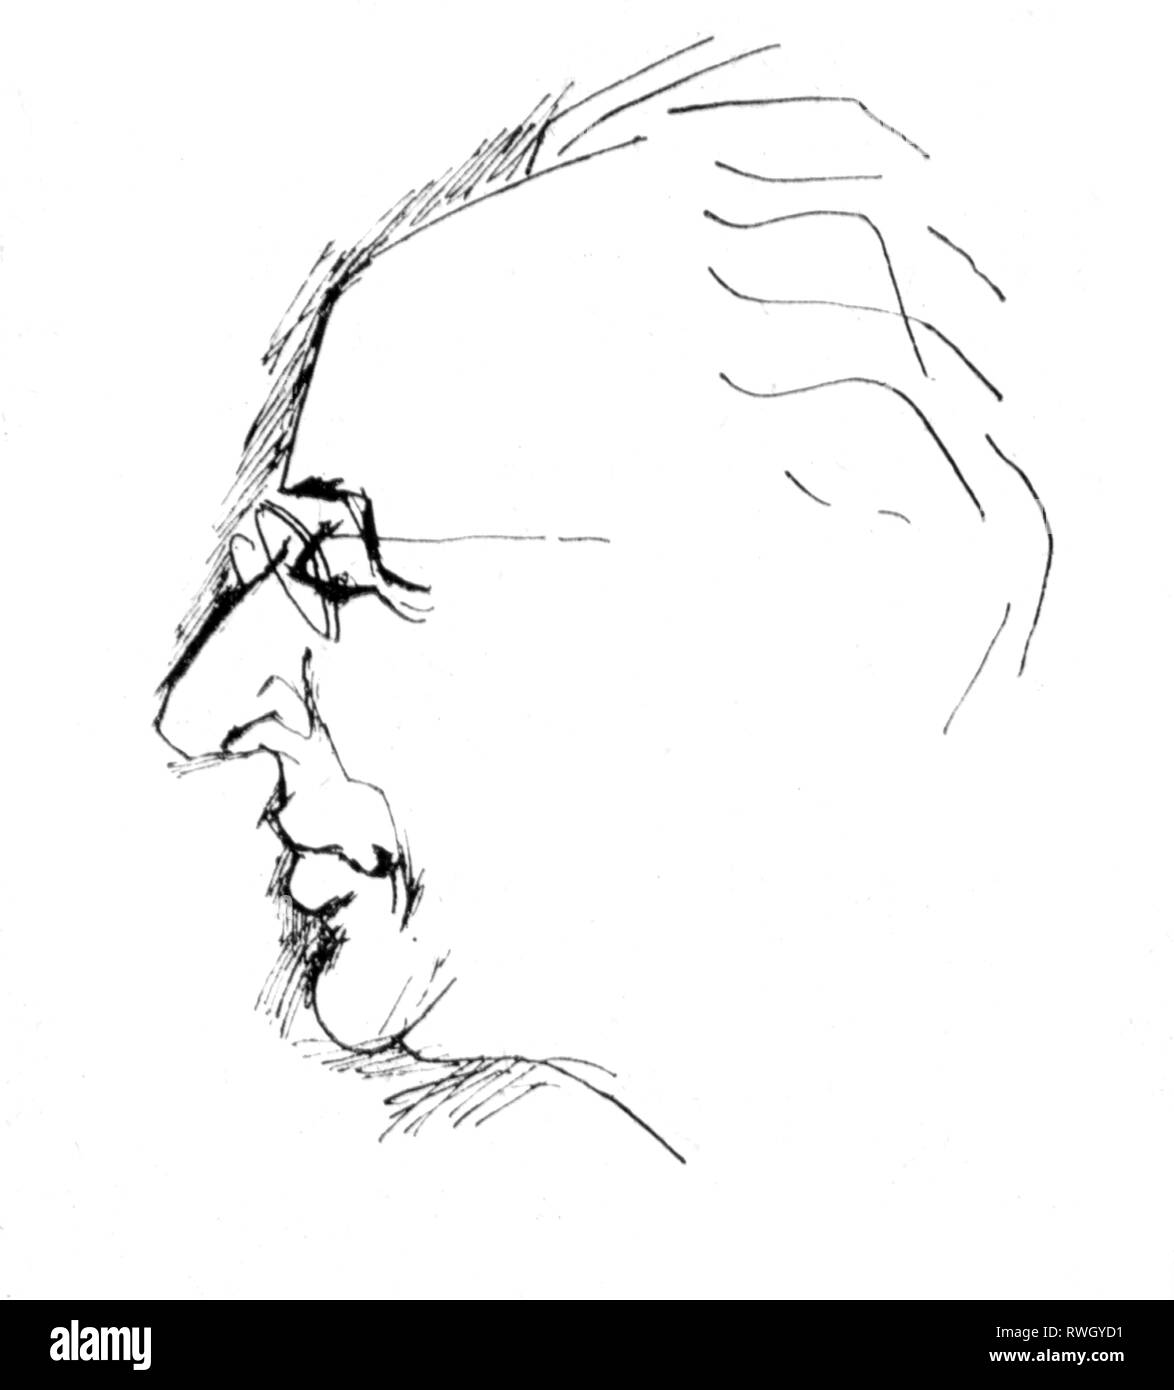 Sandberg, Herbert, 18.4.1908 - 18.3.1991, German graphic artist and cartoonist, self-portrait, 1970s, Additional-Rights-Clearance-Info-Not-Available - Stock Image